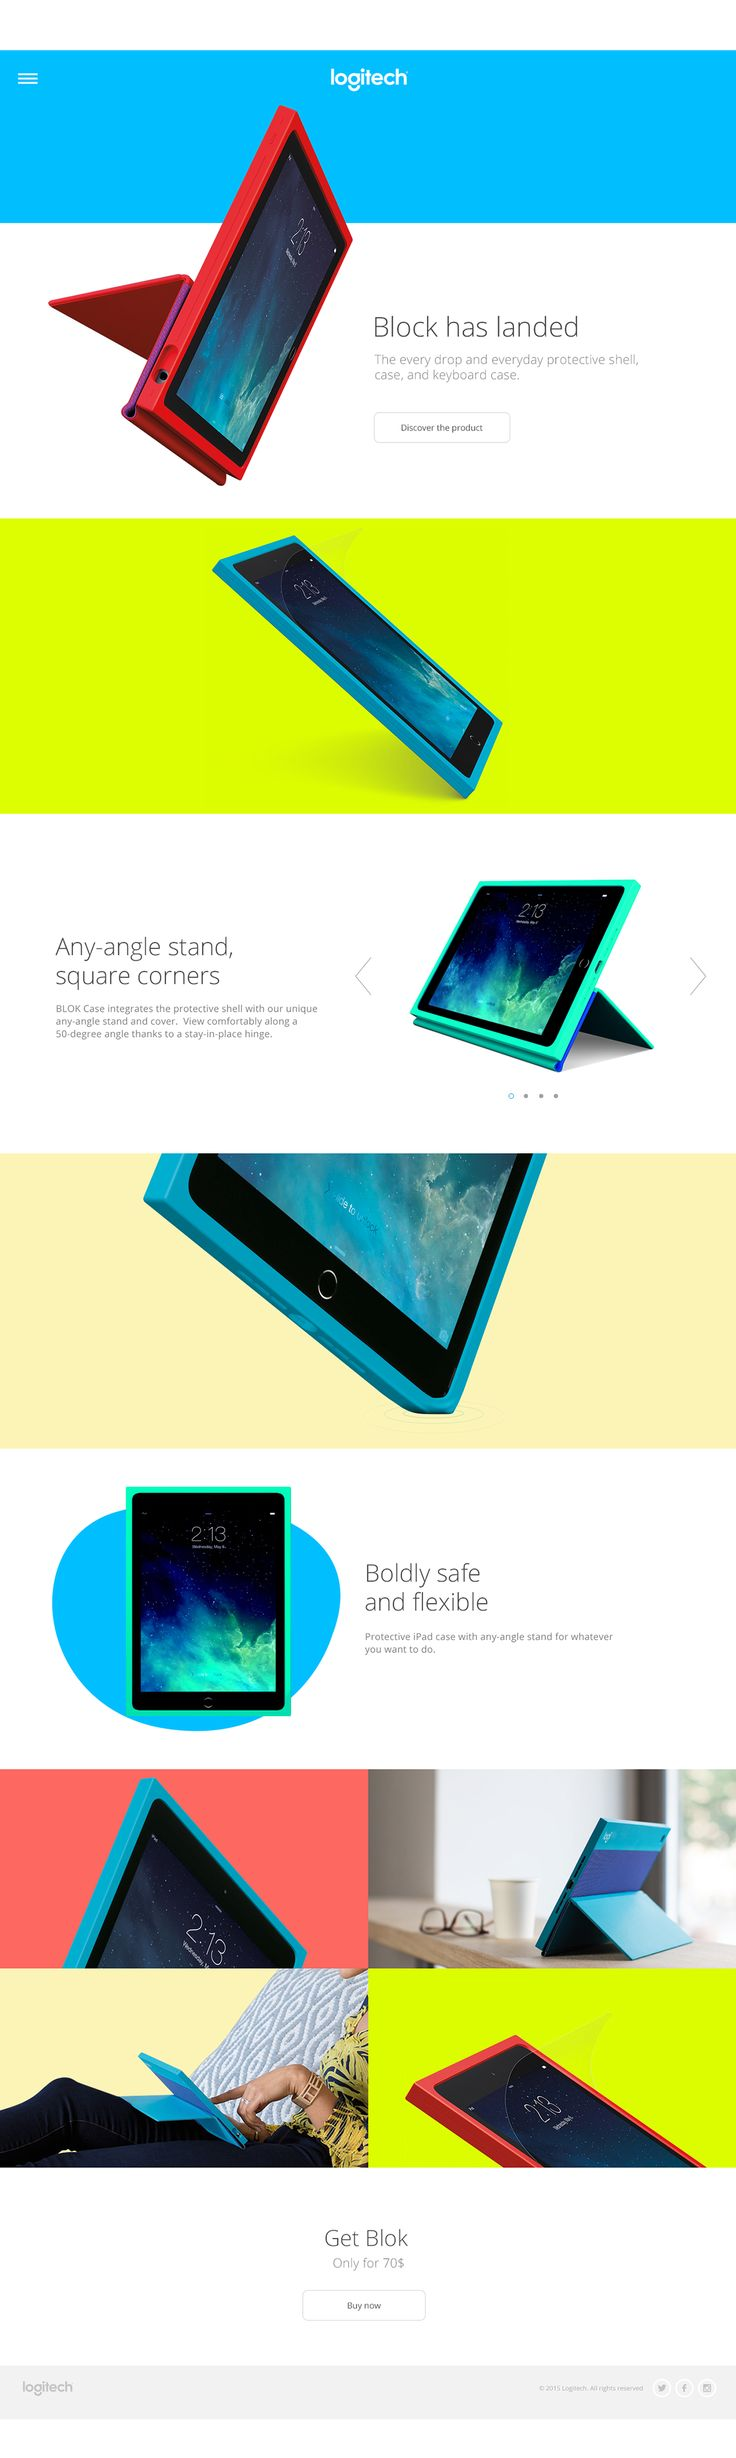 Logitech - Website concept on Behance